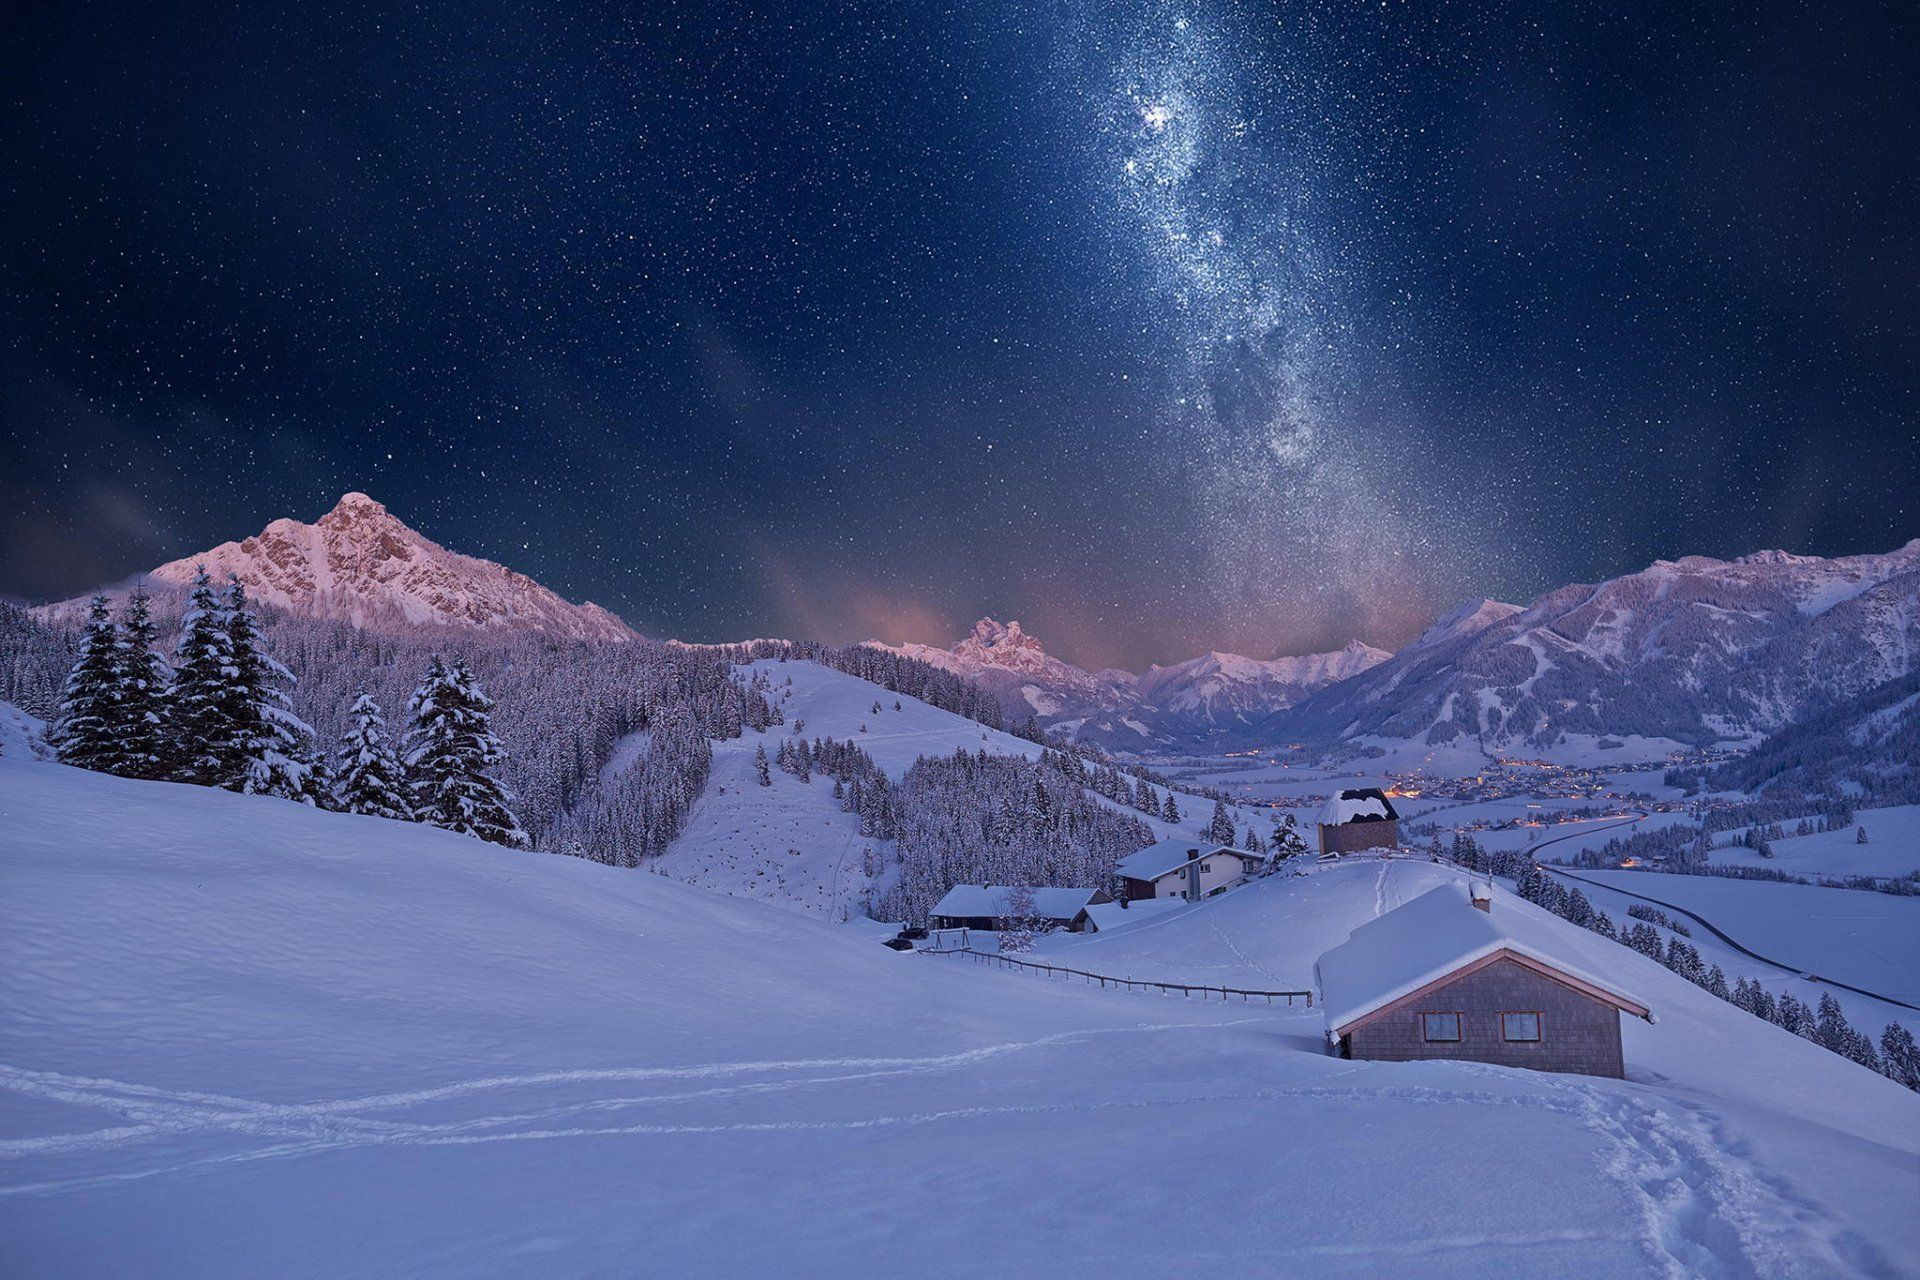 Snow Night Wallpapers Top Free Snow Night Backgrounds Wallpaperaccess